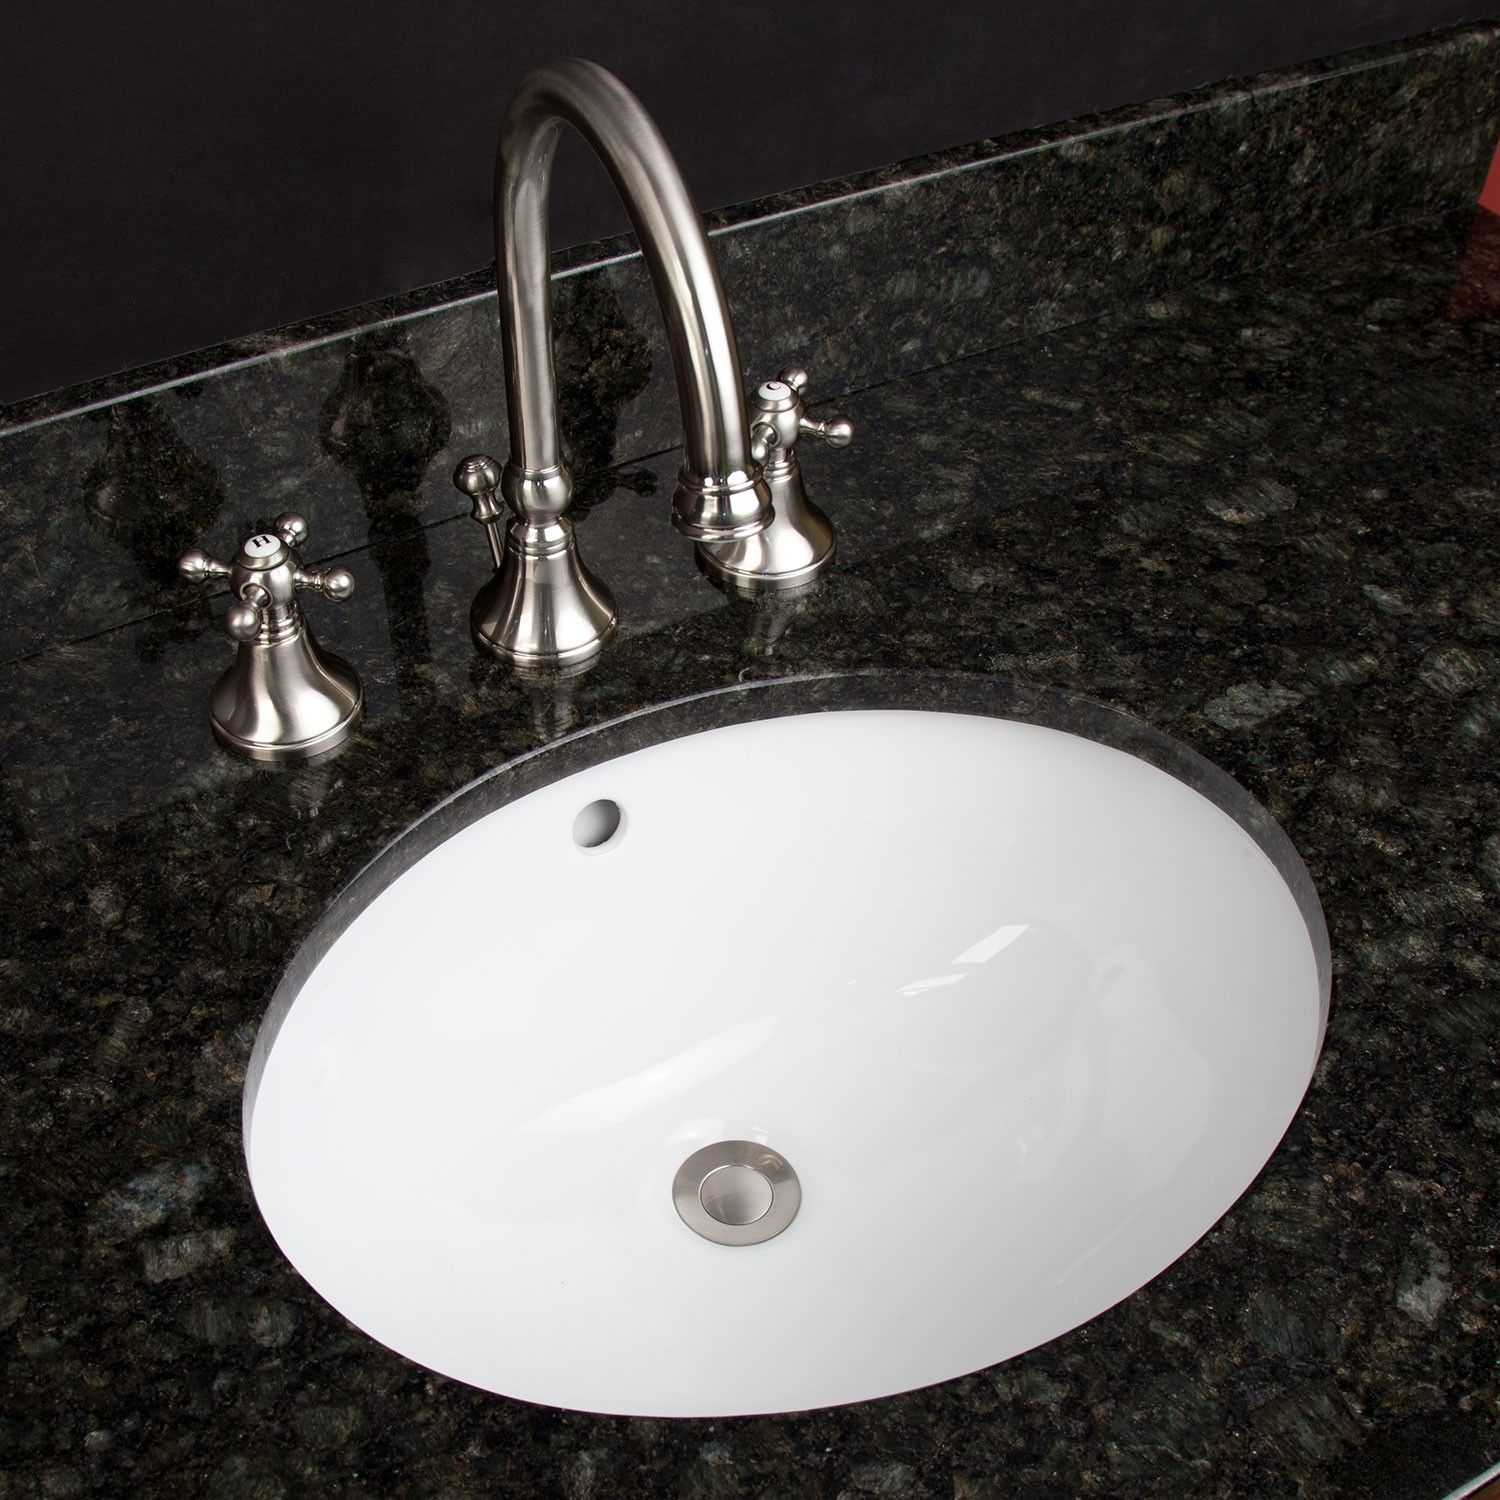 18 Oval Porcelain Undermount Bathroom Sink